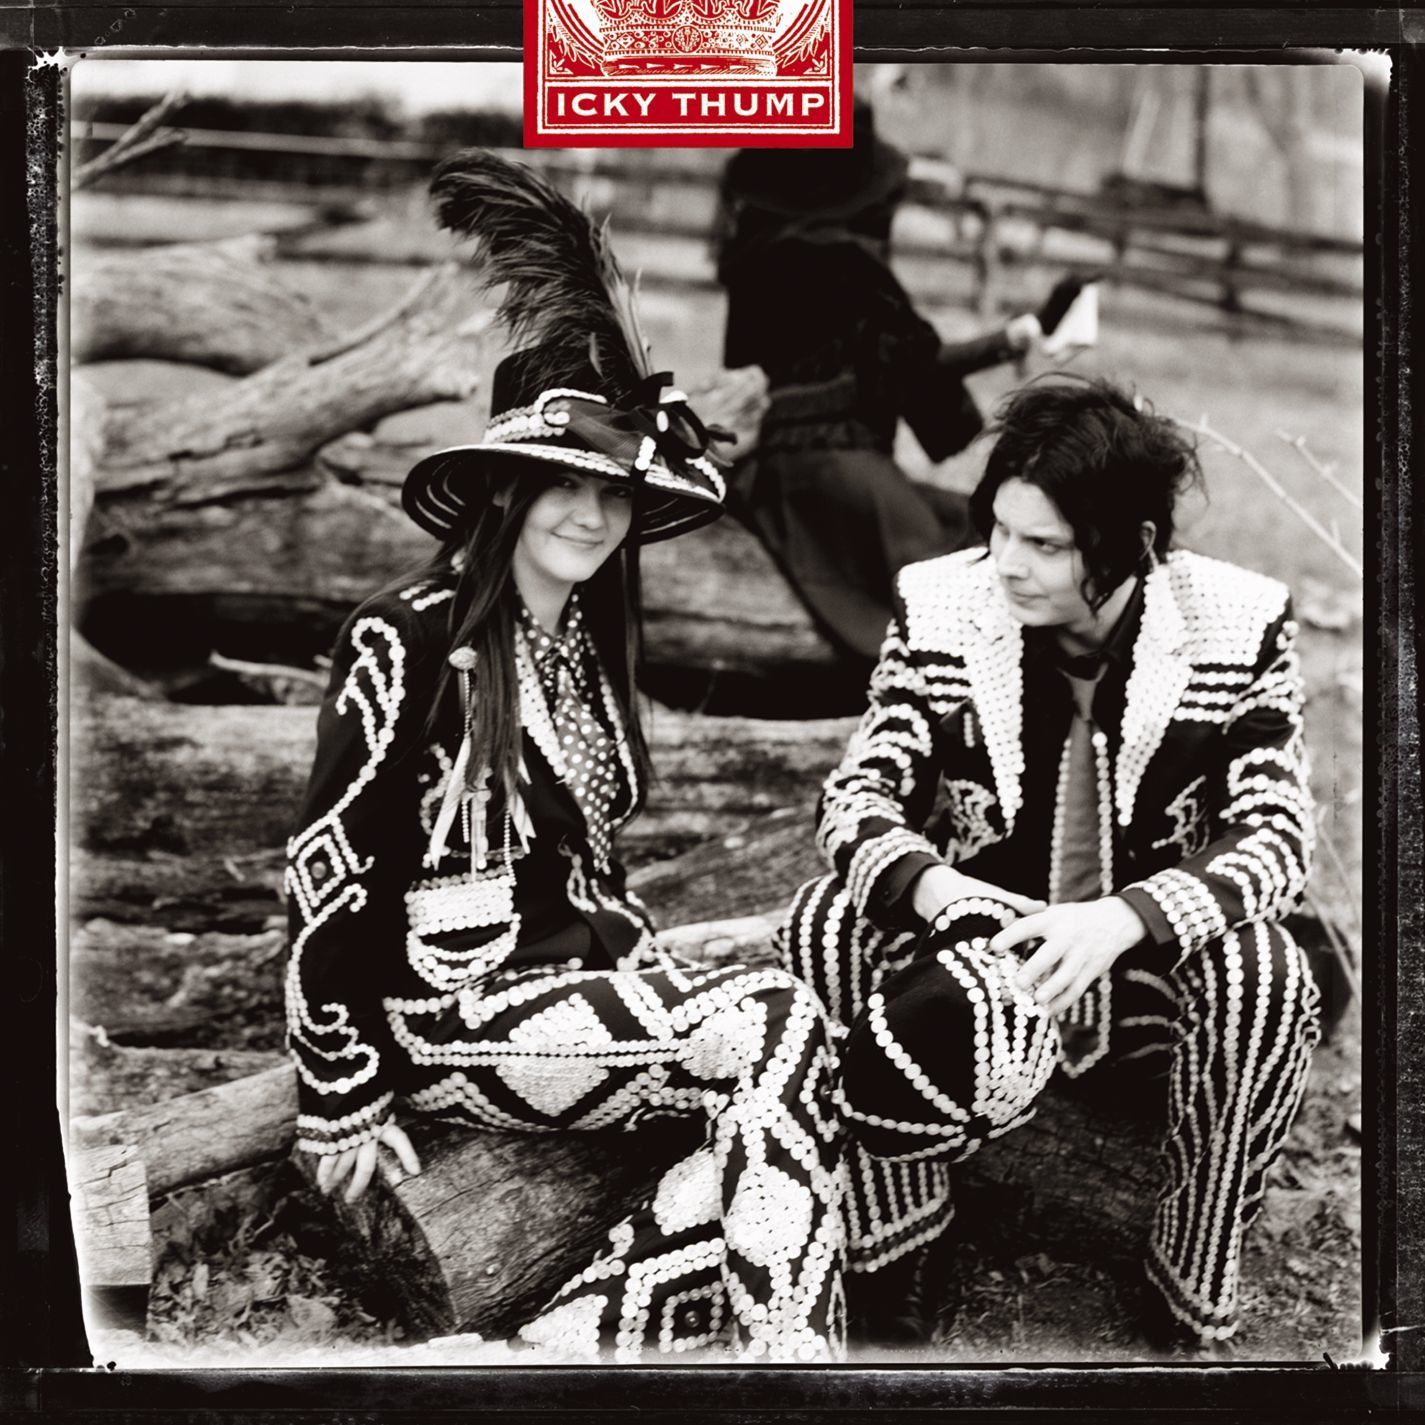 The White Stripes - Icky Thump album cover